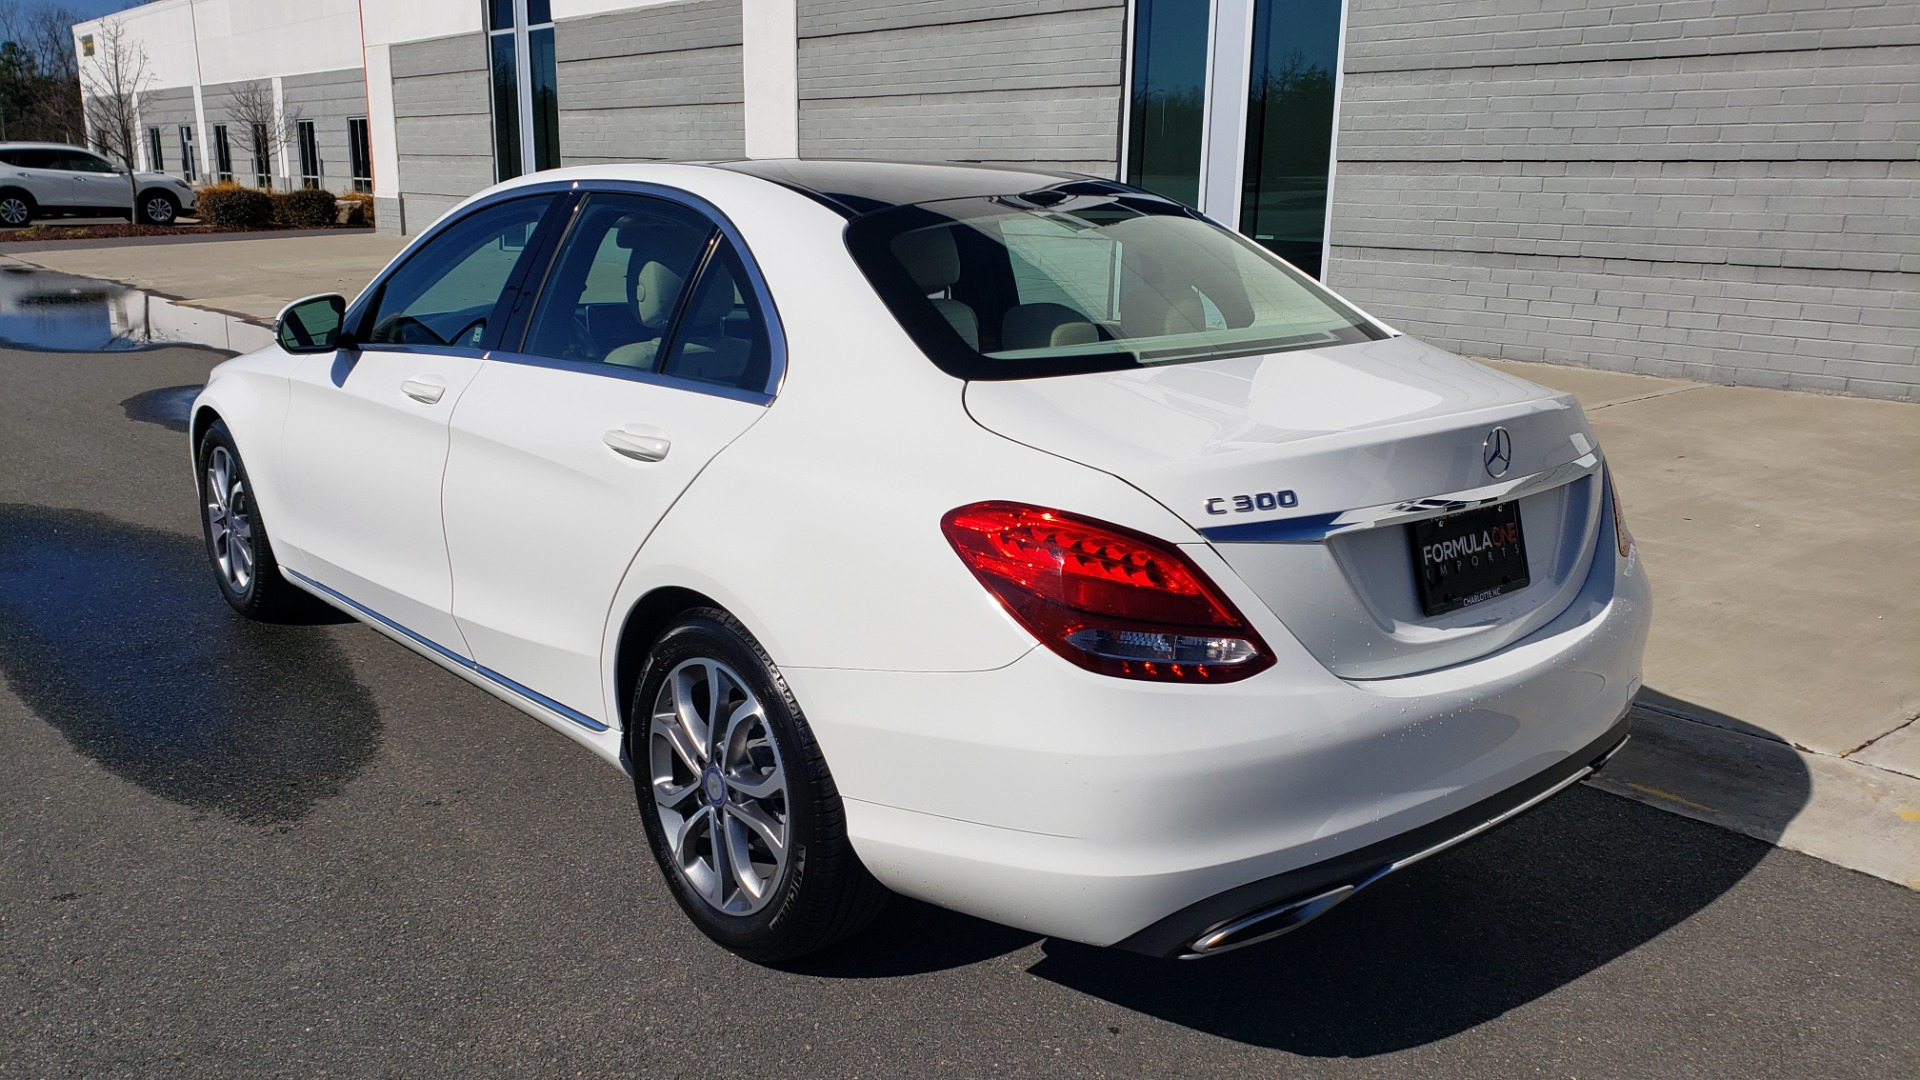 Used 2017 Mercedes-Benz C-CLASS C300 / 2.0L / 7-SPD AUTO / BSA / PANO-ROOF / REARVIEW for sale Sold at Formula Imports in Charlotte NC 28227 3